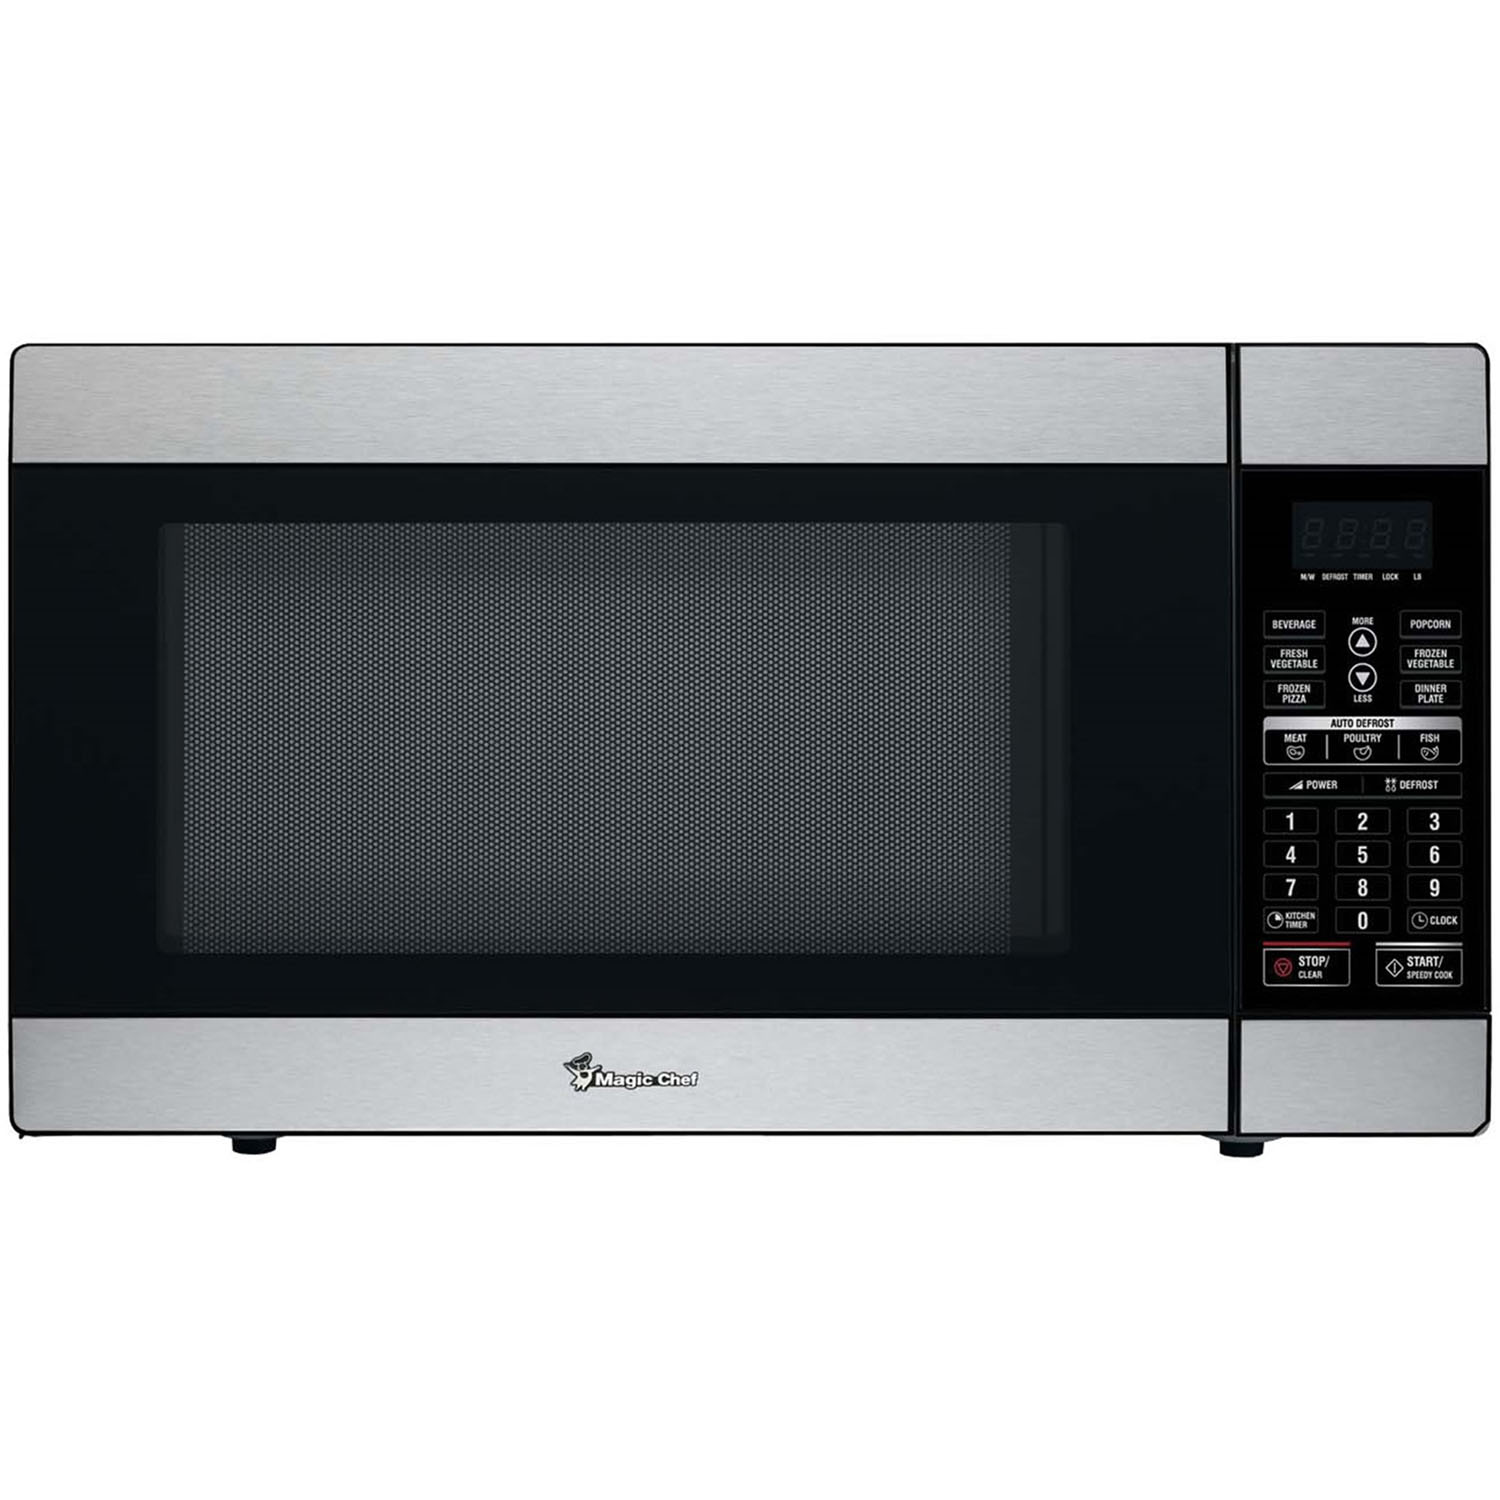 magic chef 1 8 cu ft 1100w countertop microwave oven in stainless steel